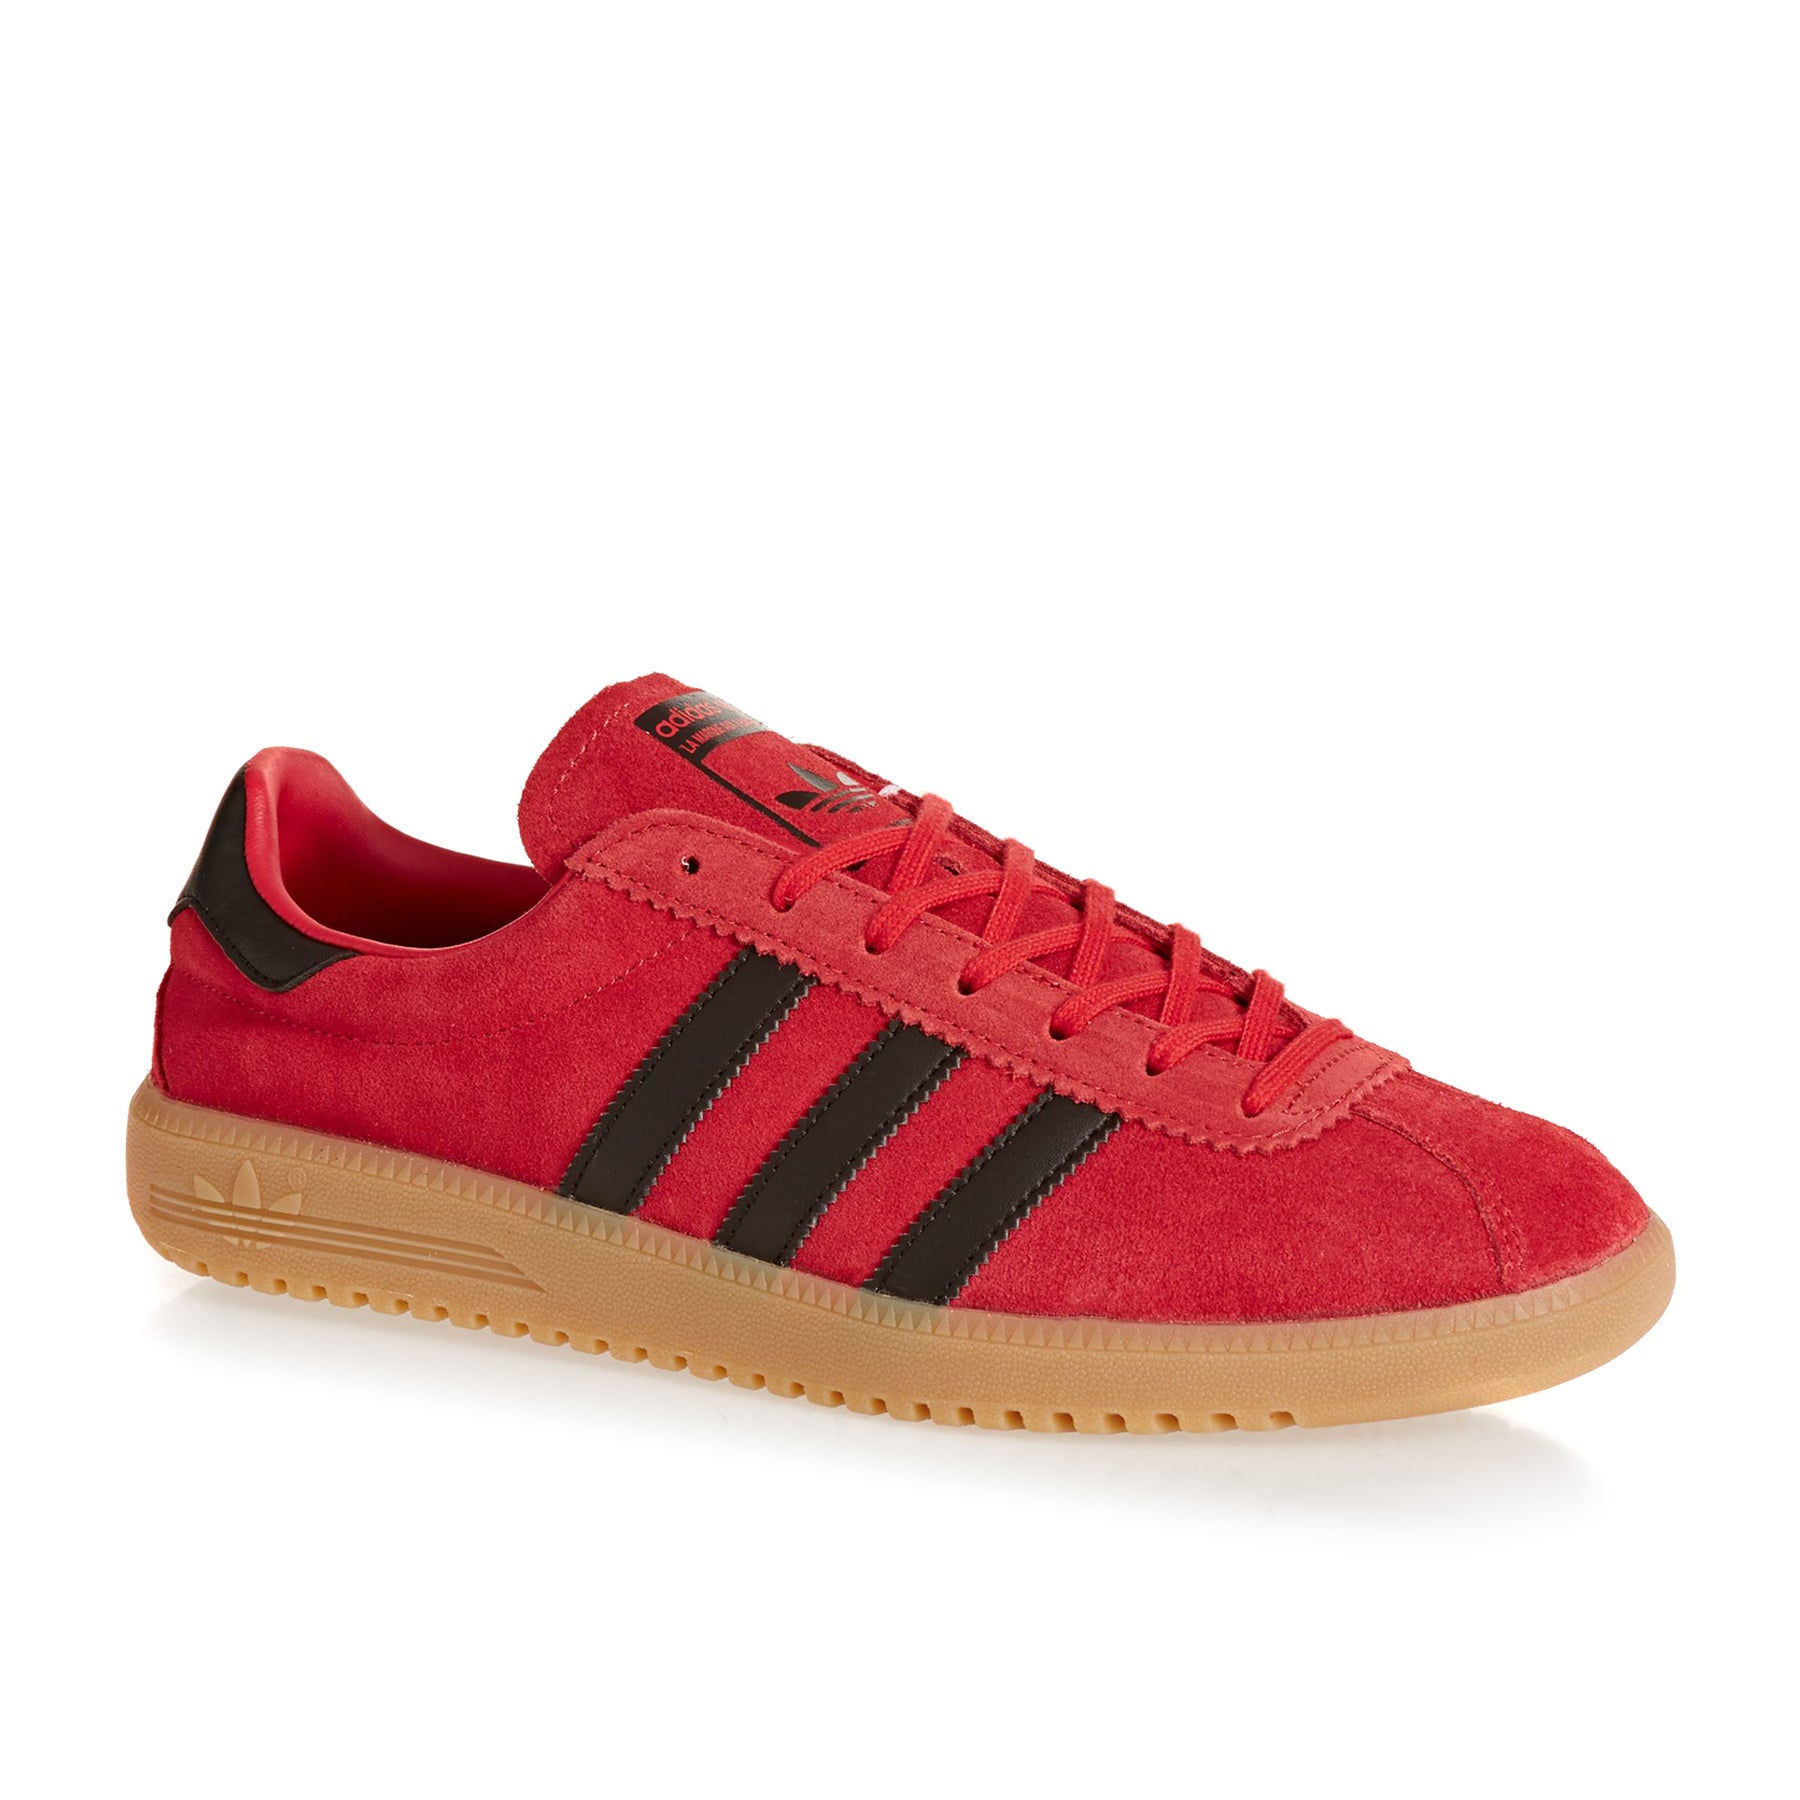 Adidas Originals Bermuda Shoes - Scarlet Black Gum